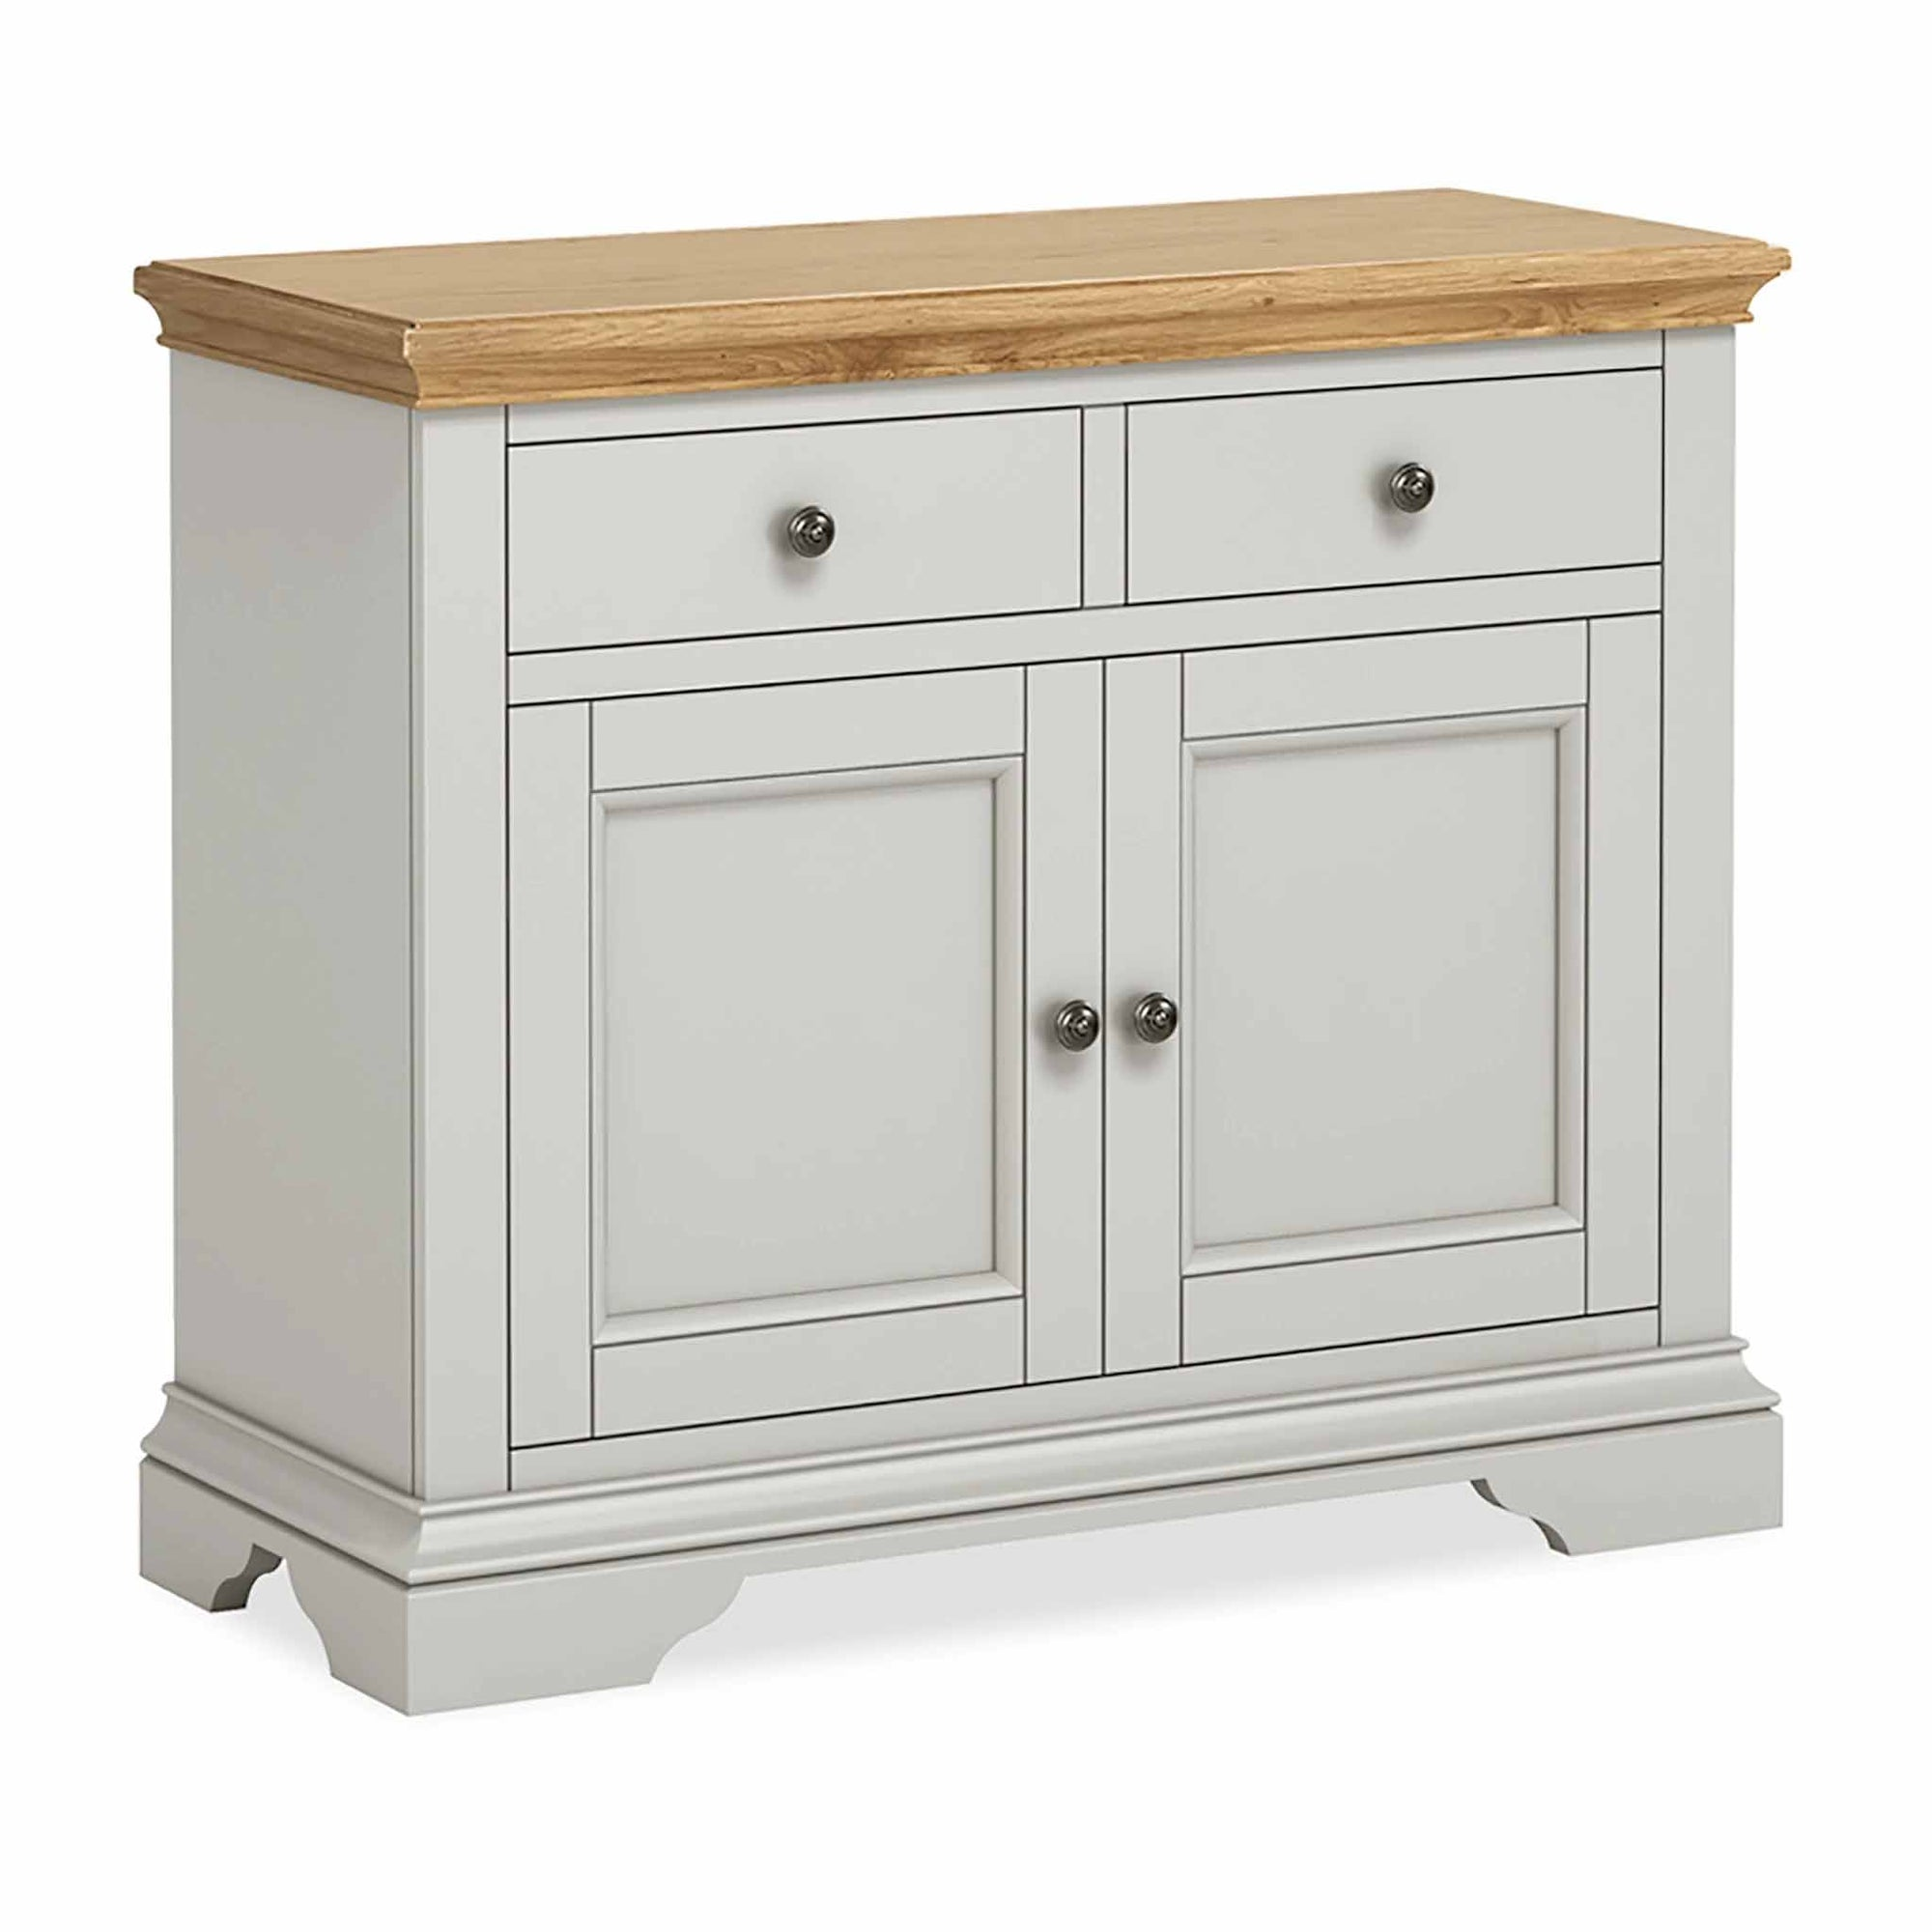 Normandy Grey Small Sideboard by Roseland Furniture